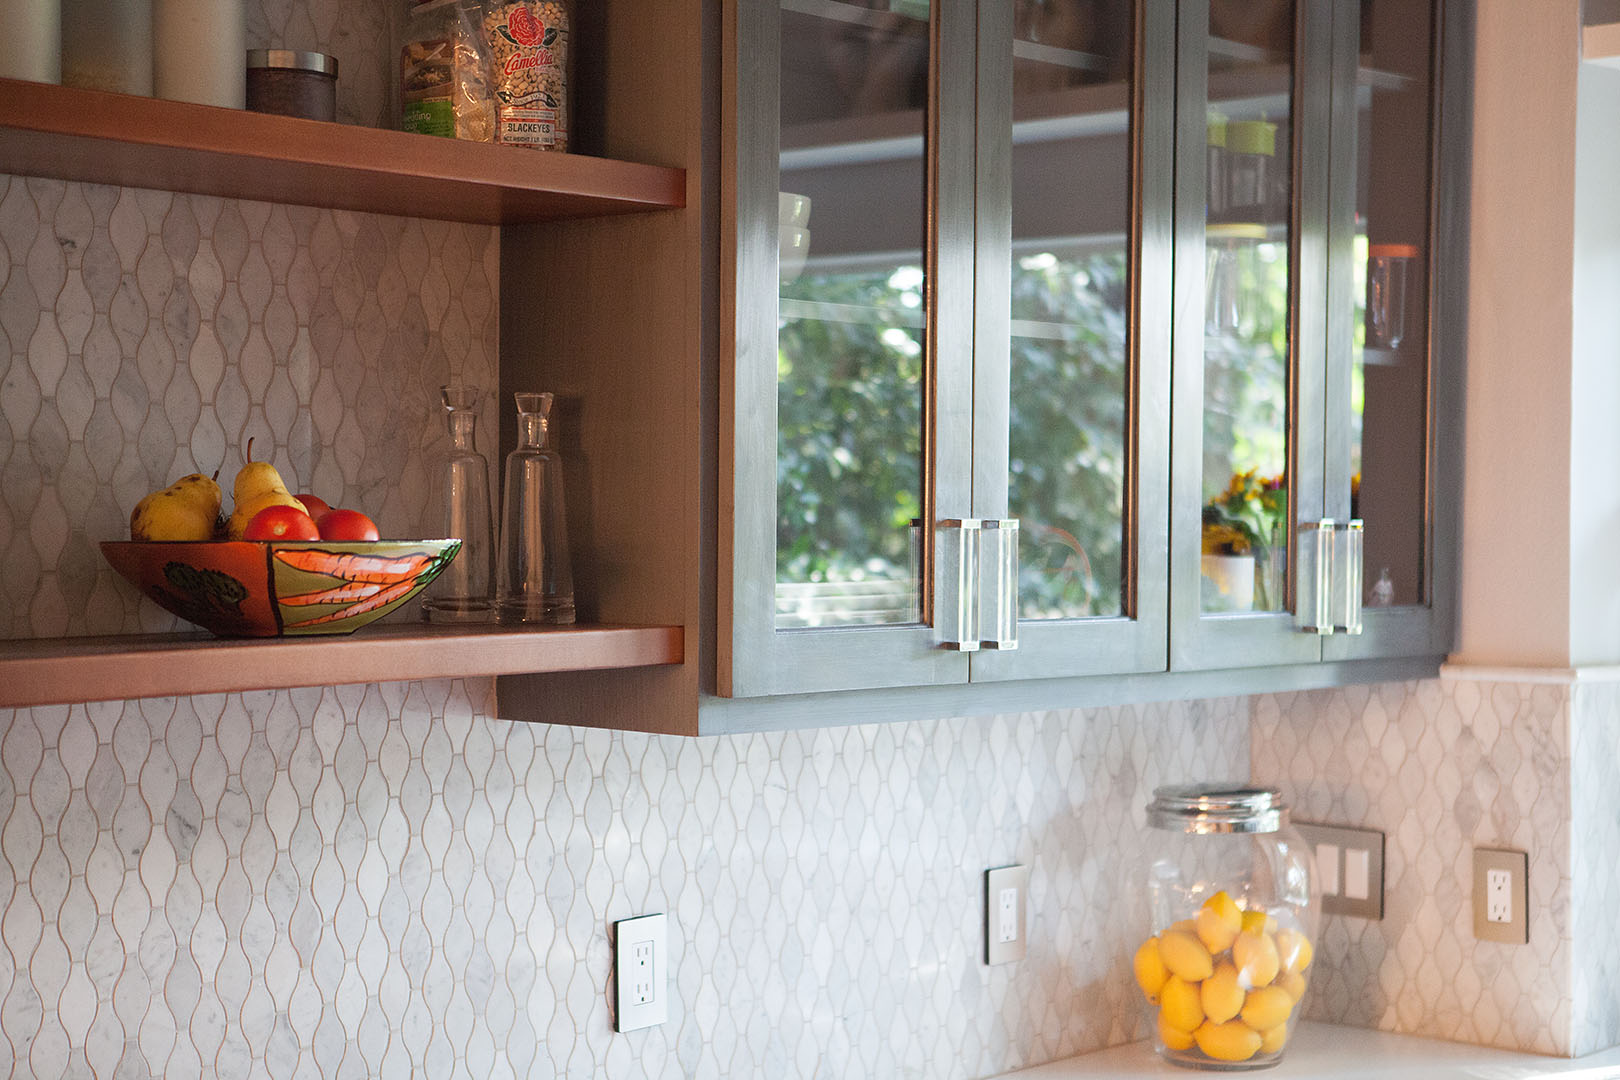 Kitchen cabinets design in Oakland, CA